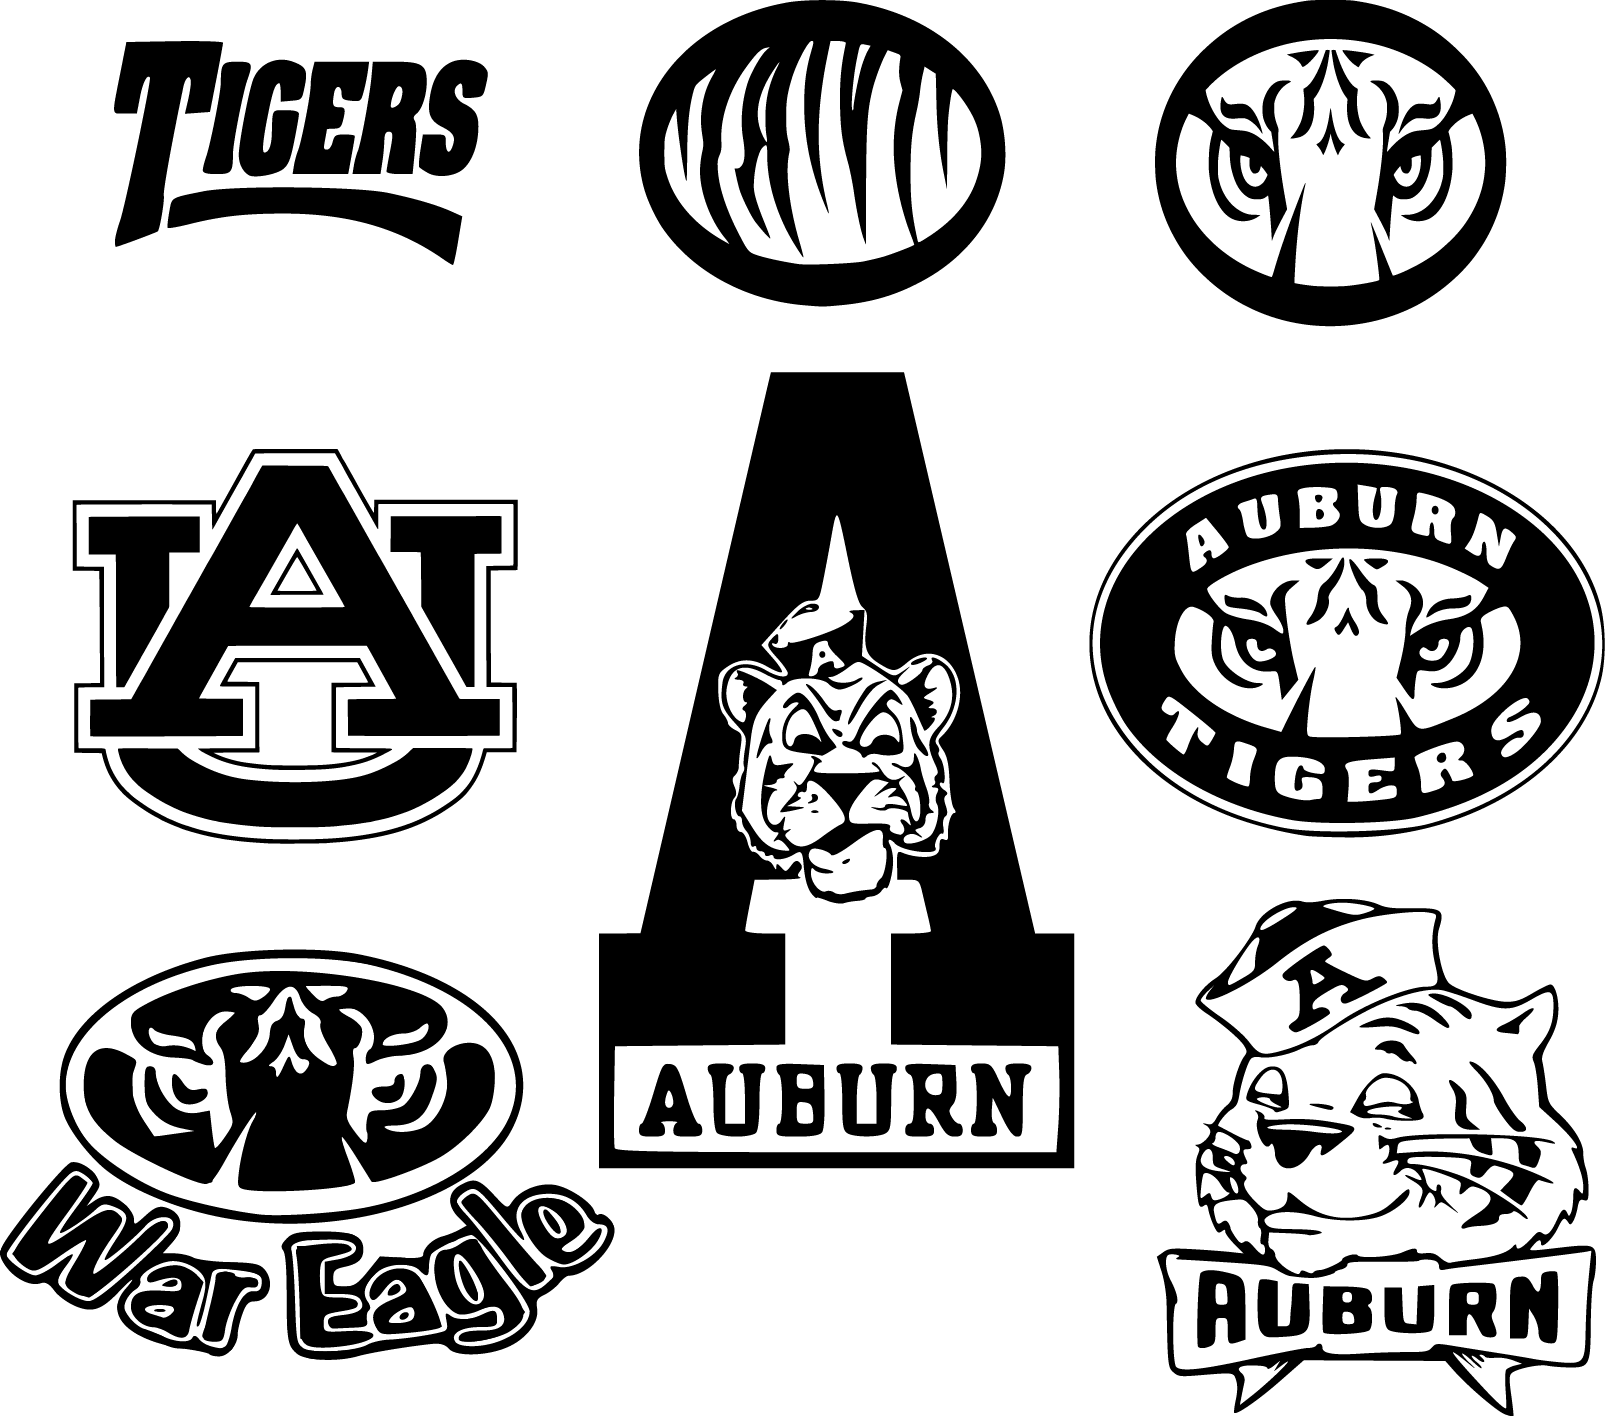 tigers svg #1229, Download drawings